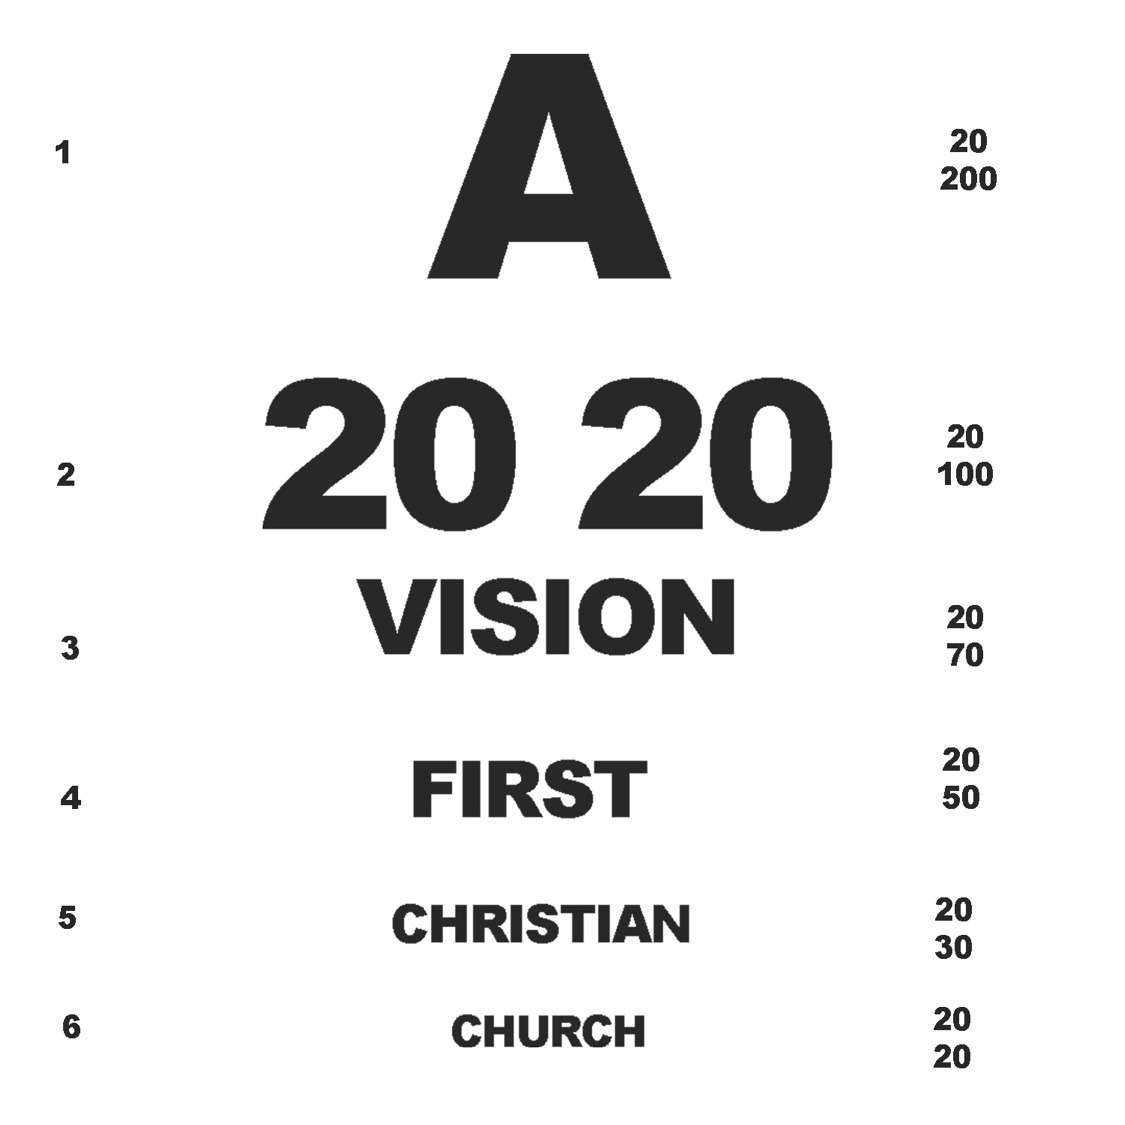 2020 VISION (Part 2 - A God-Sized Vision)